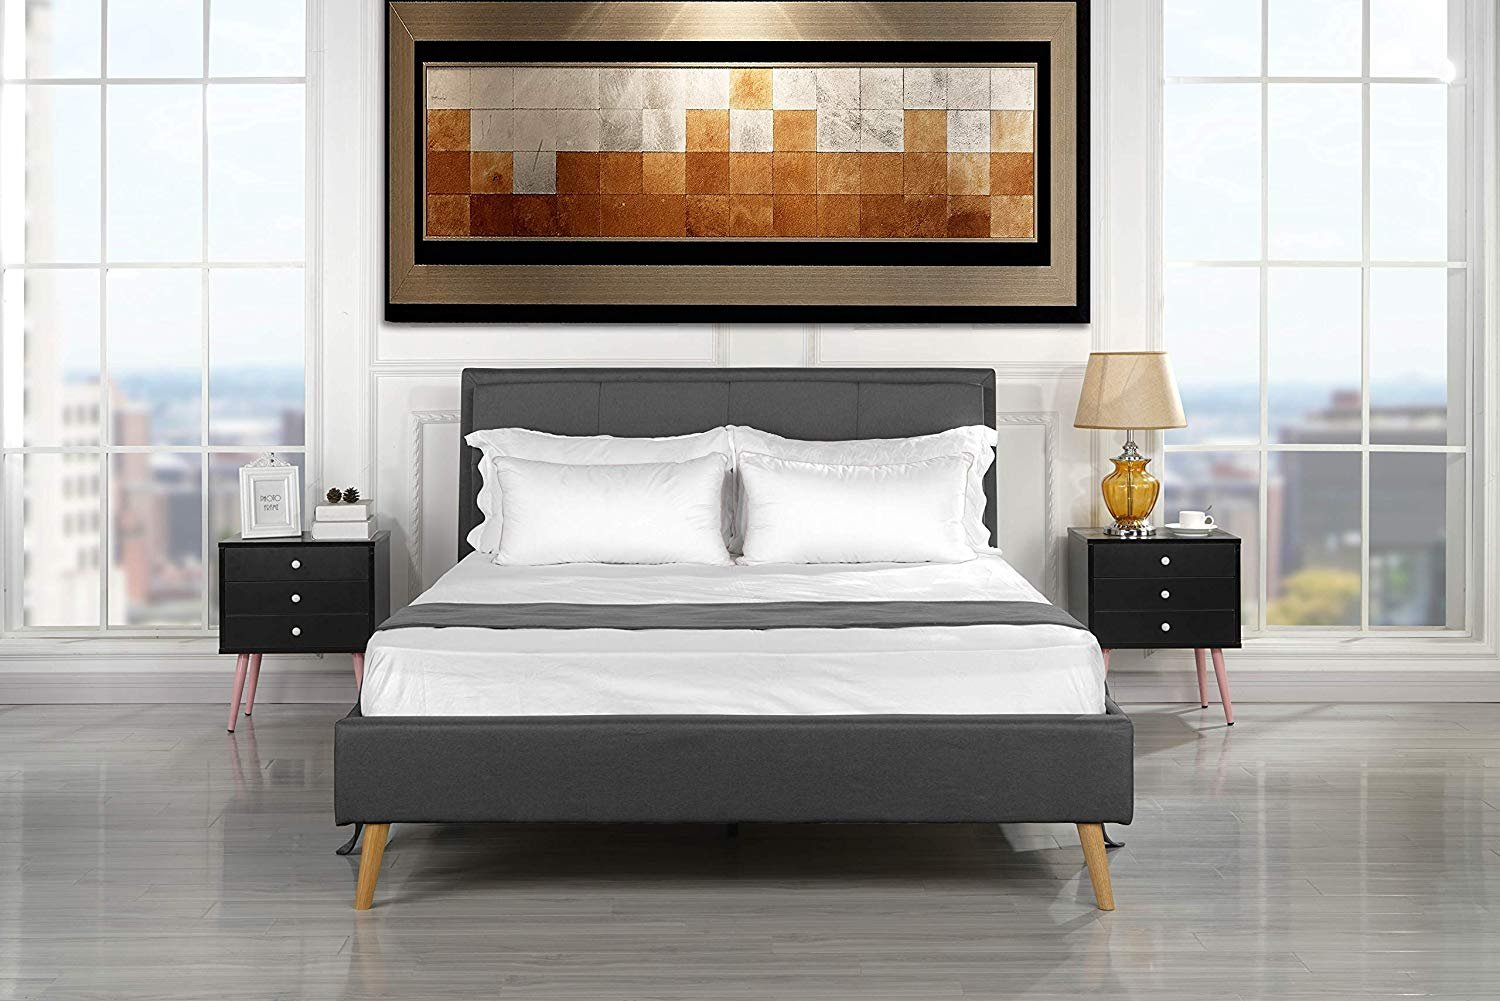 Attrayant Mid Century Modern Upholstered Bed Frame With Tufted Headboard (Full, Dark  Grey)   Walmart.com